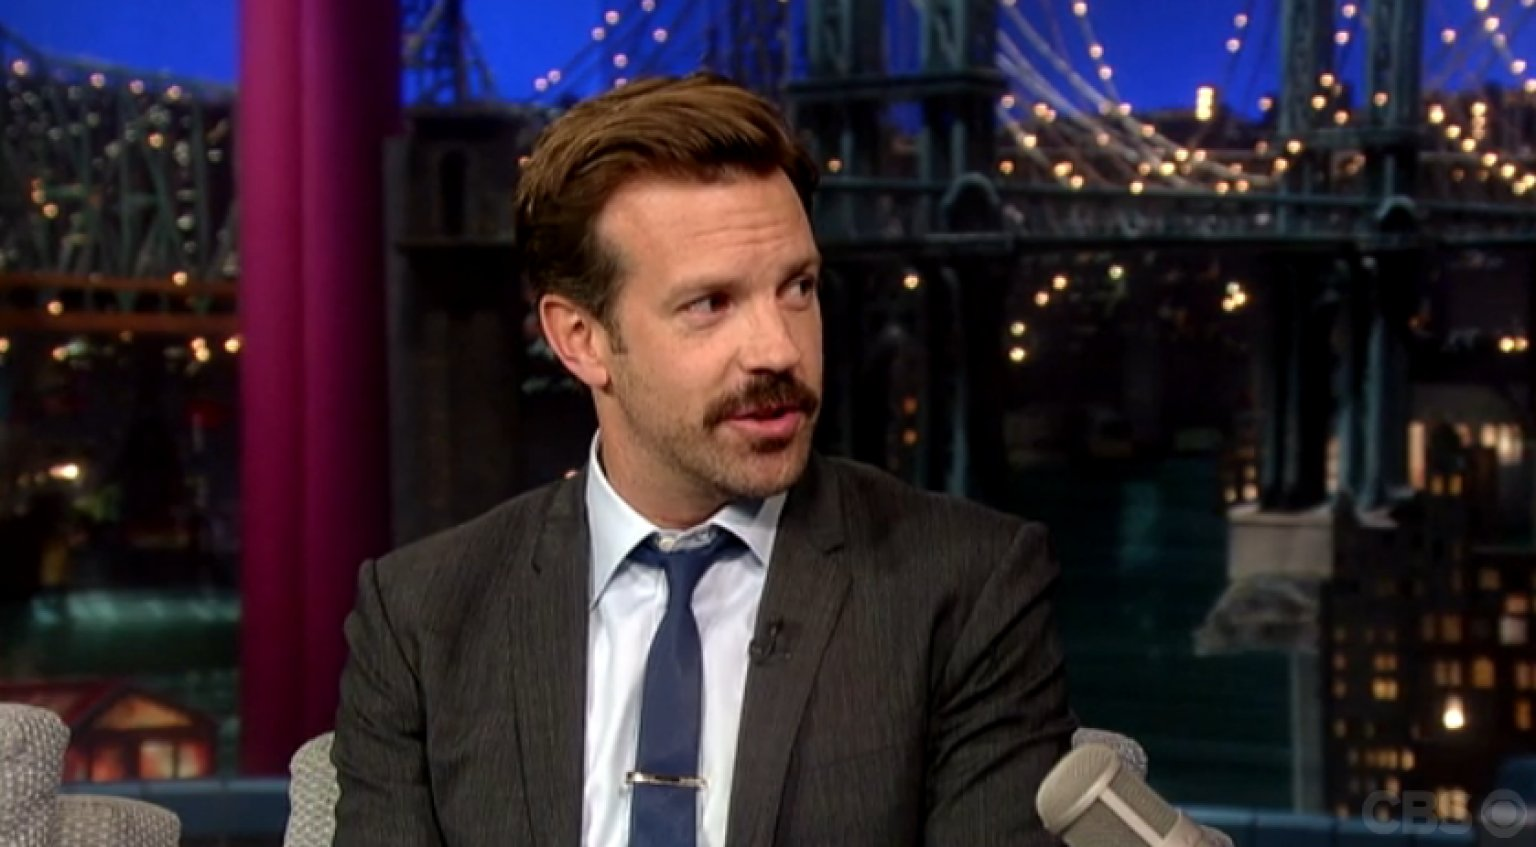 jason sudeikis peliculasjason sudeikis wife, jason sudeikis height, jason sudeikis films, jason sudeikis wiki, jason sudeikis anne hathaway, jason sudeikis basketball, jason sudeikis фильмы, jason sudeikis mbti, jason sudeikis sings, jason sudeikis listal, jason sudeikis zimbio, jason sudeikis crying, jason sudeikis mother, jason sudeikis lake bell, jason sudeikis january jones, jason sudeikis seth meyers, jason sudeikis ed helms, jason sudeikis comedy movies, jason sudeikis peliculas, jason sudeikis pierre bouvier